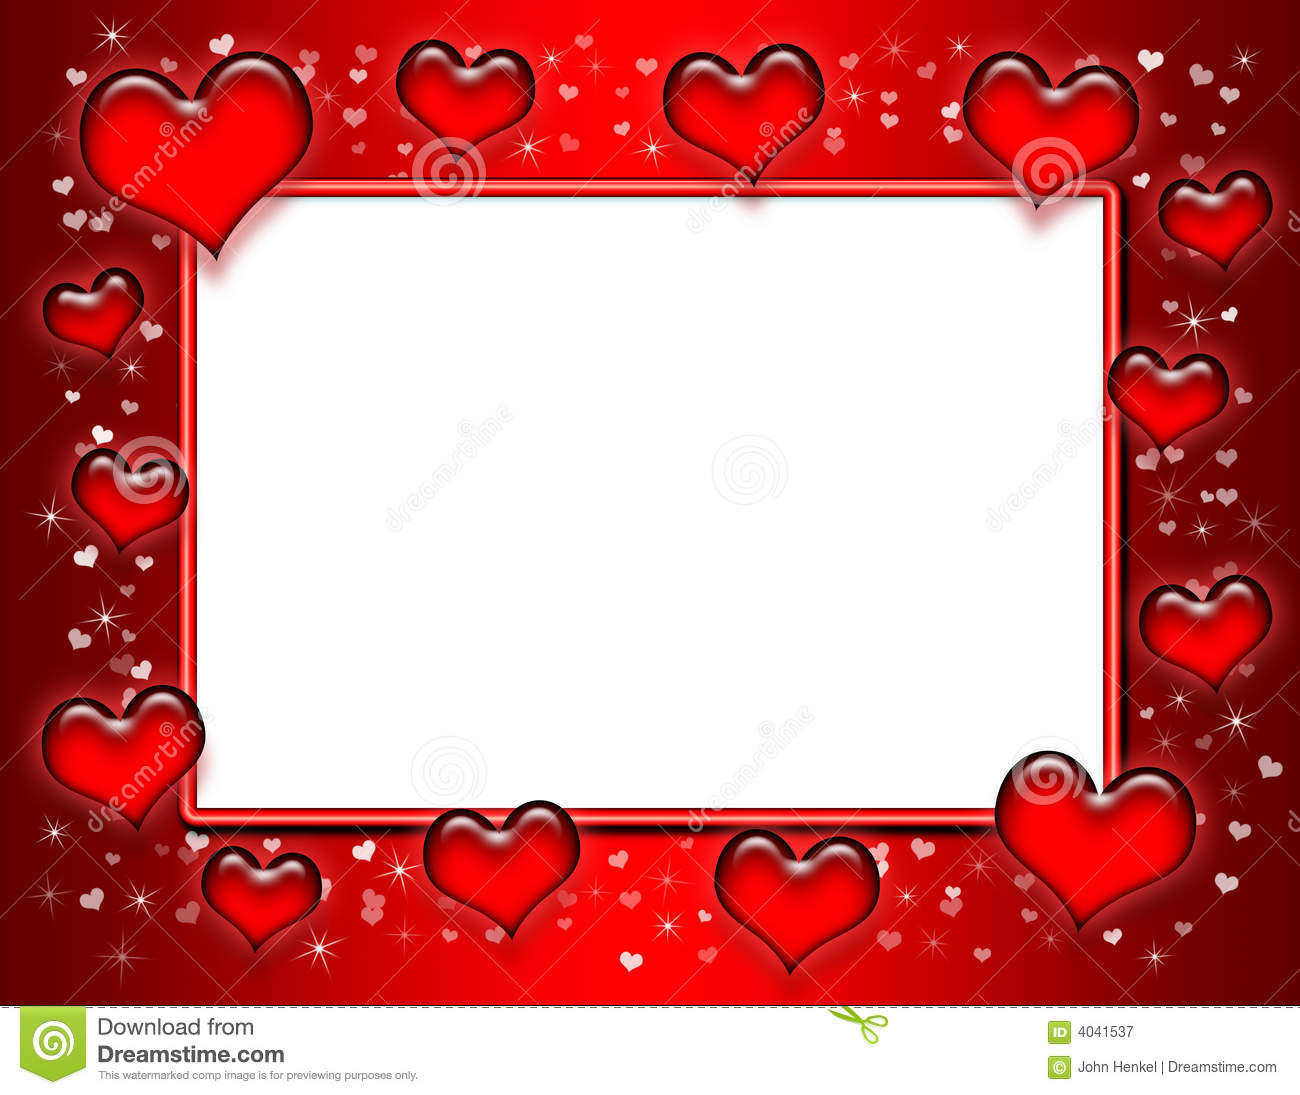 Heart Frame Royalty Free Stock Photography - Image: 4041537